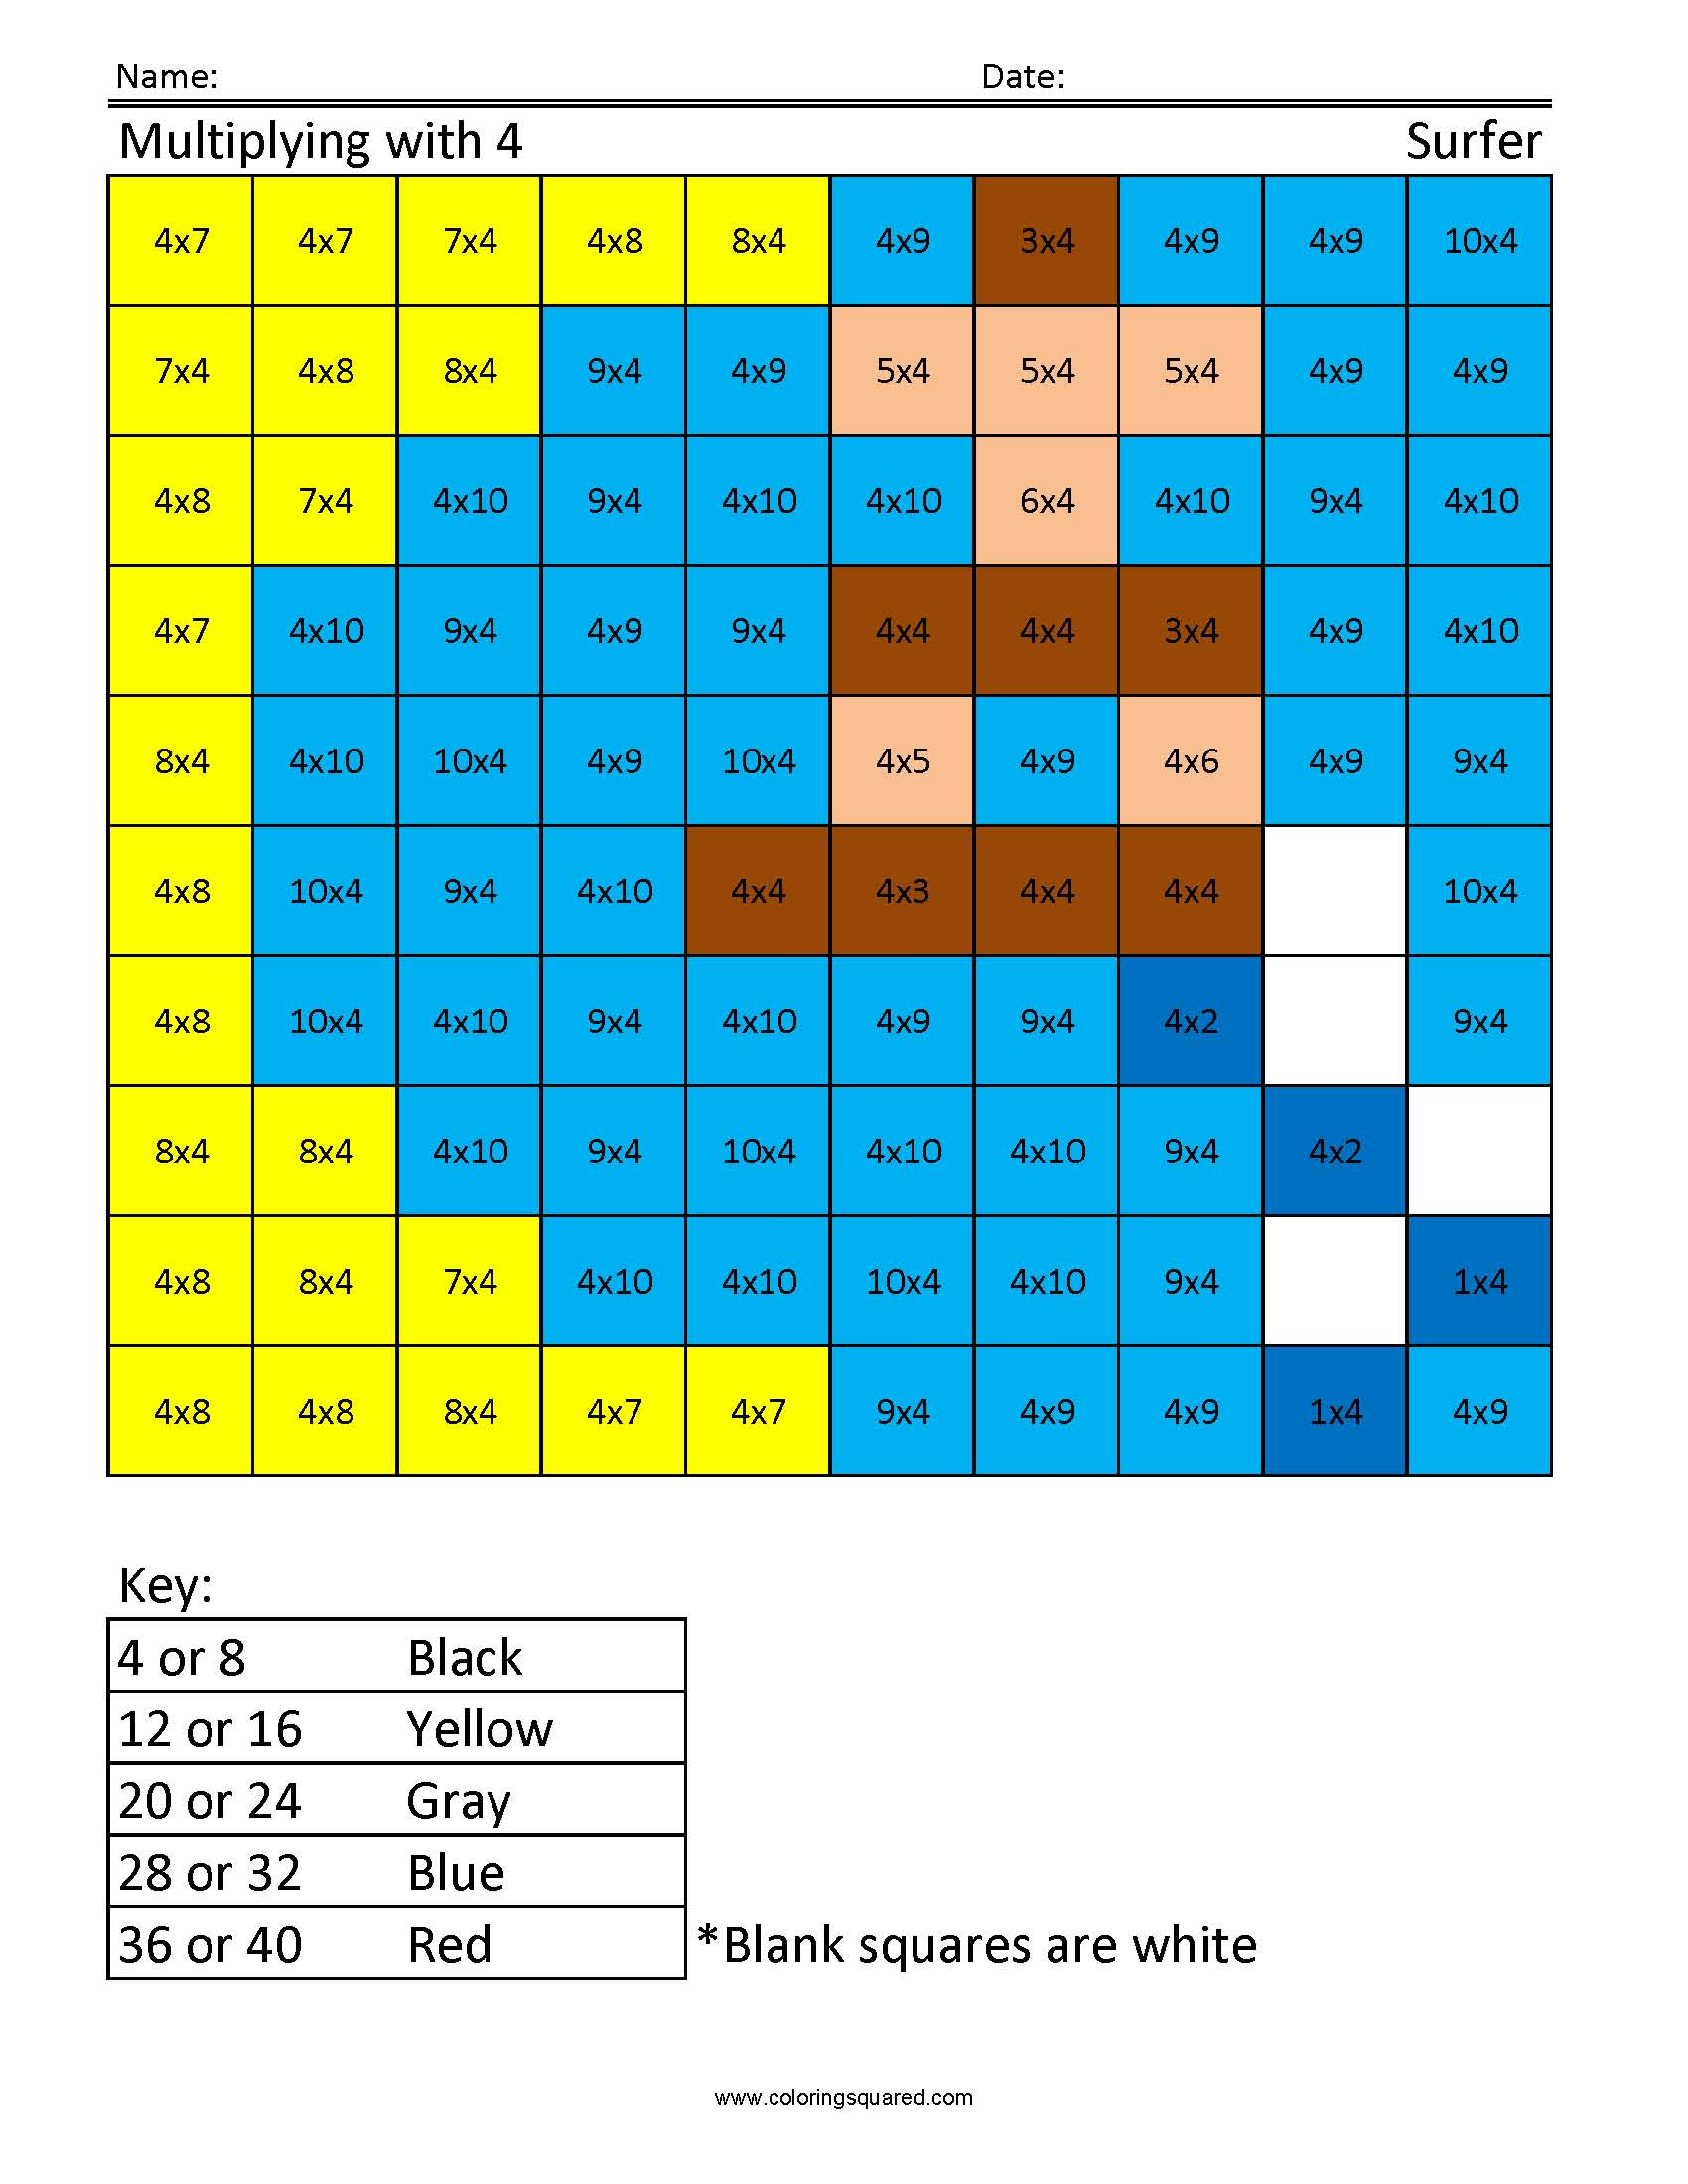 JM4 Surfer free multiplication times table practice - Coloring Squared